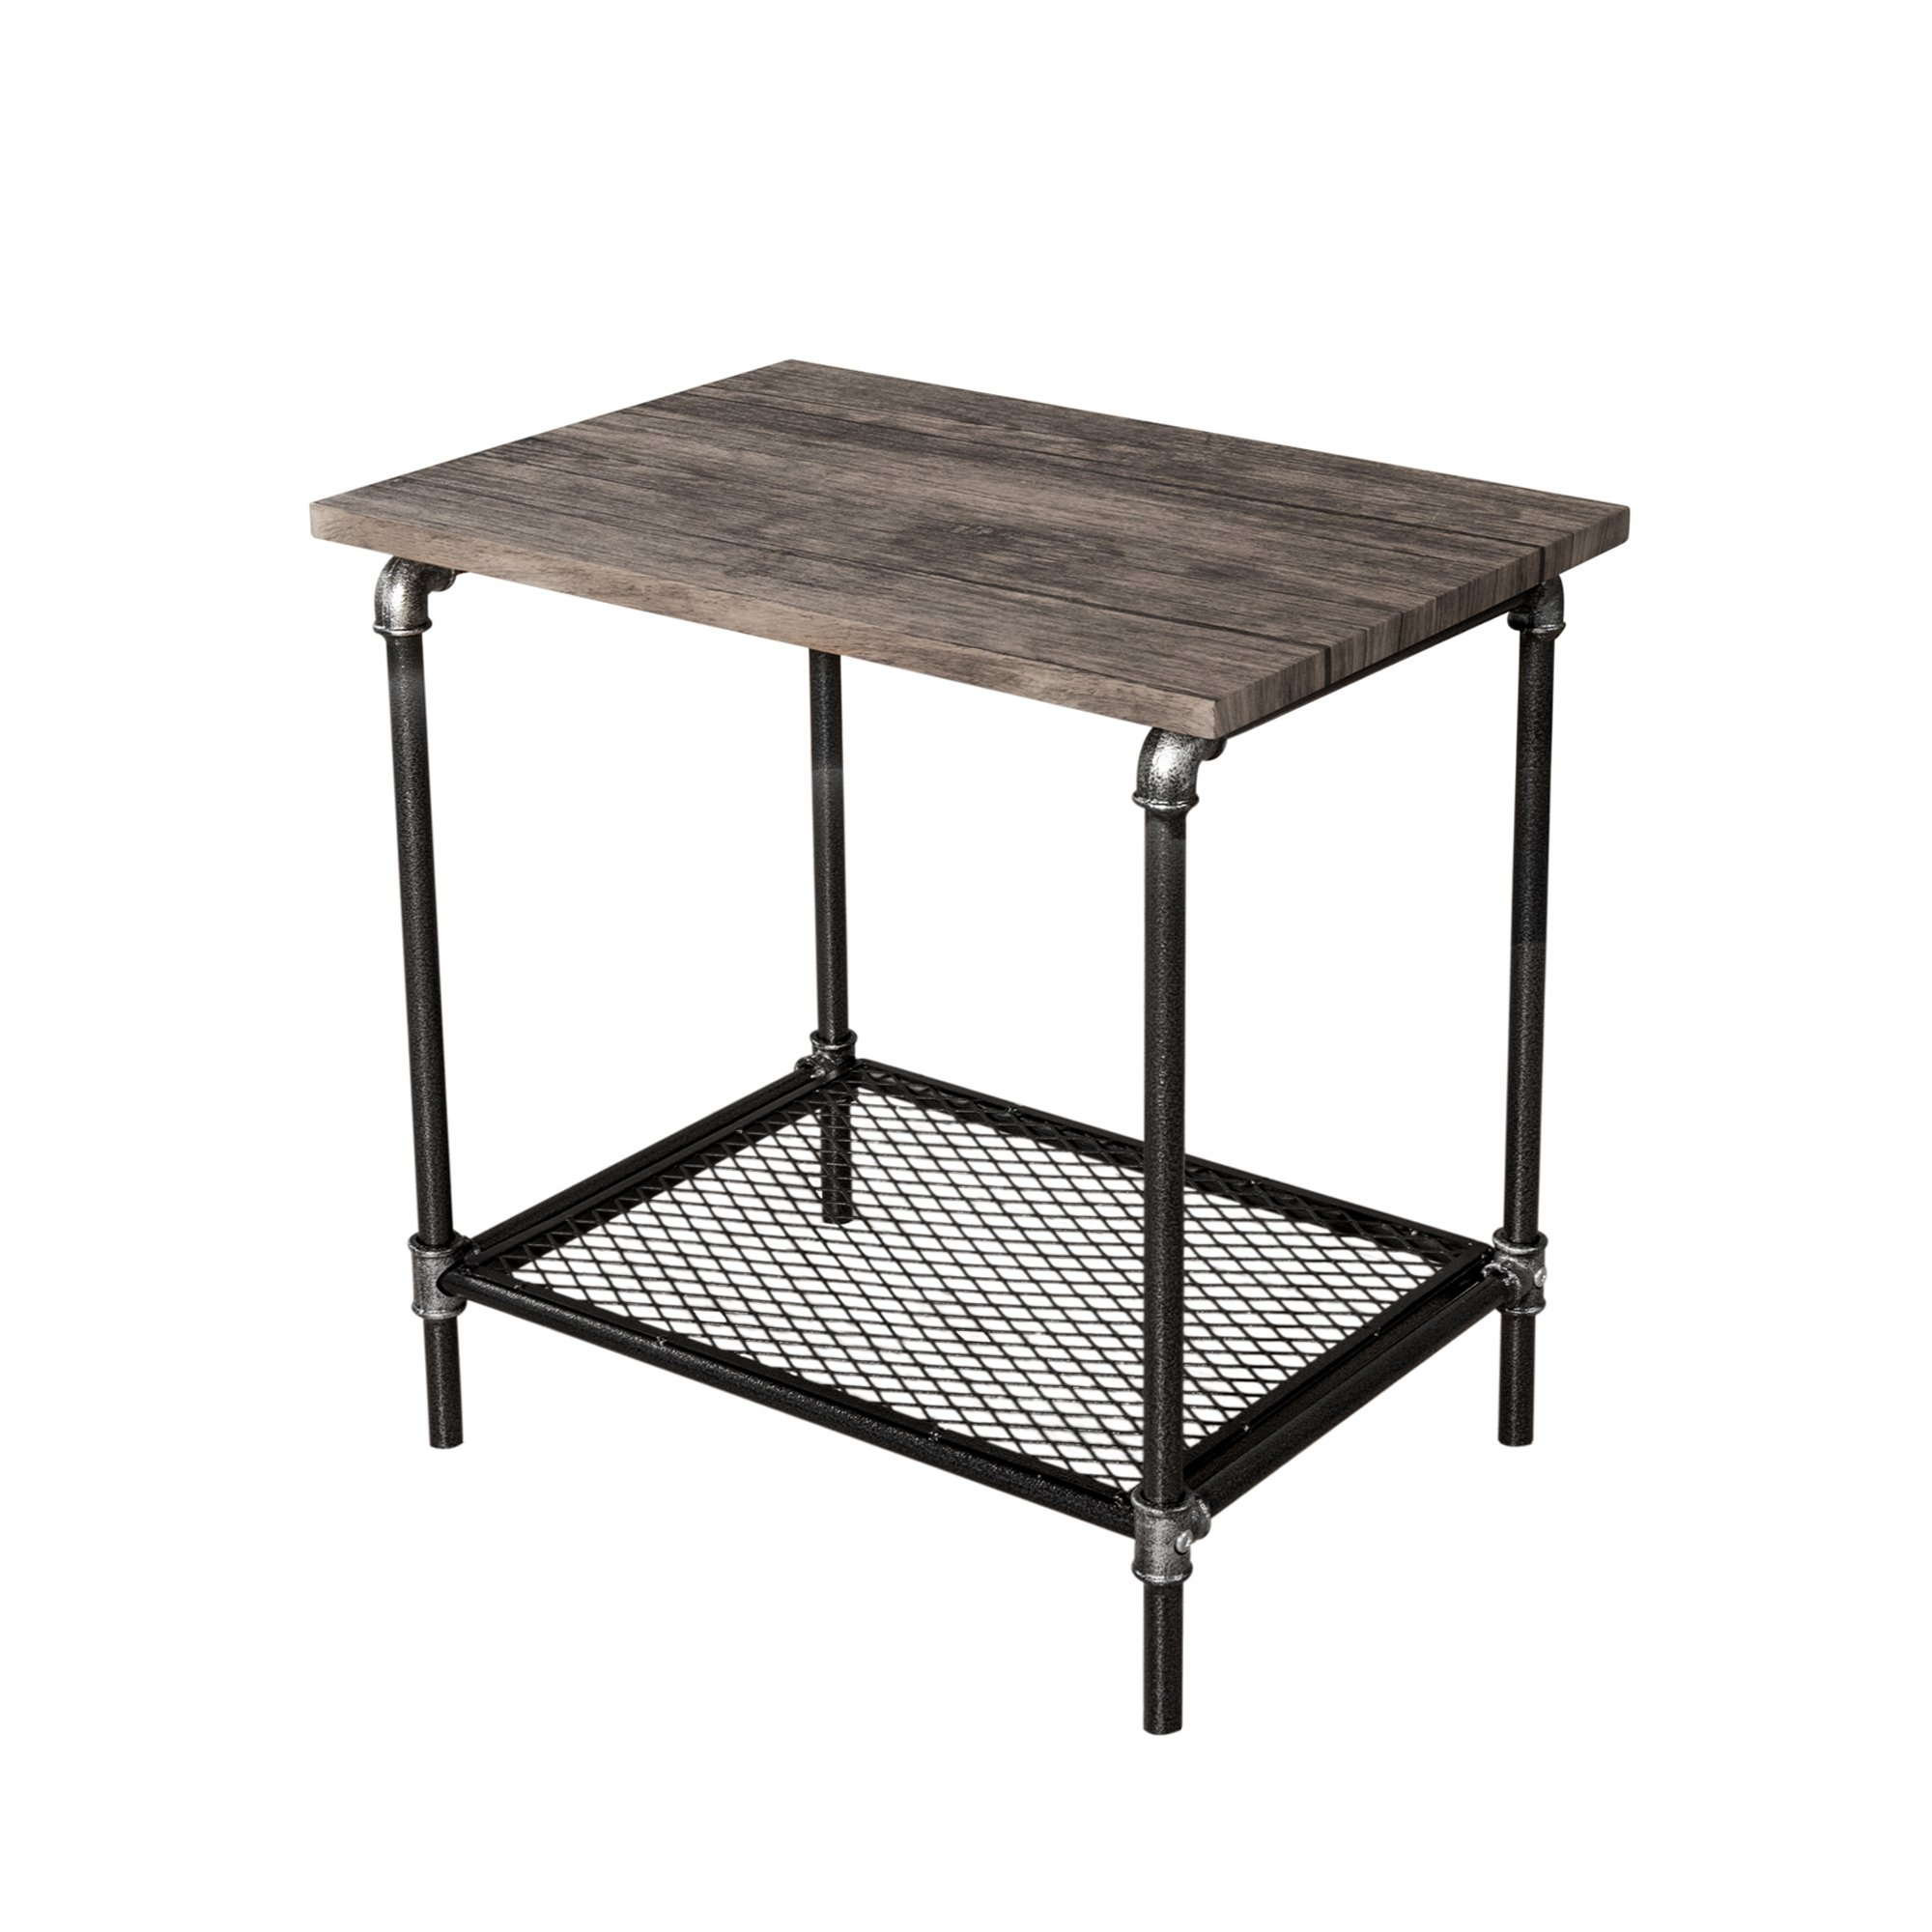 Stylish Designer Coffee Table Industrial Antiques Steam: Starsong Retro Antique Industrial Vintage Style End Night